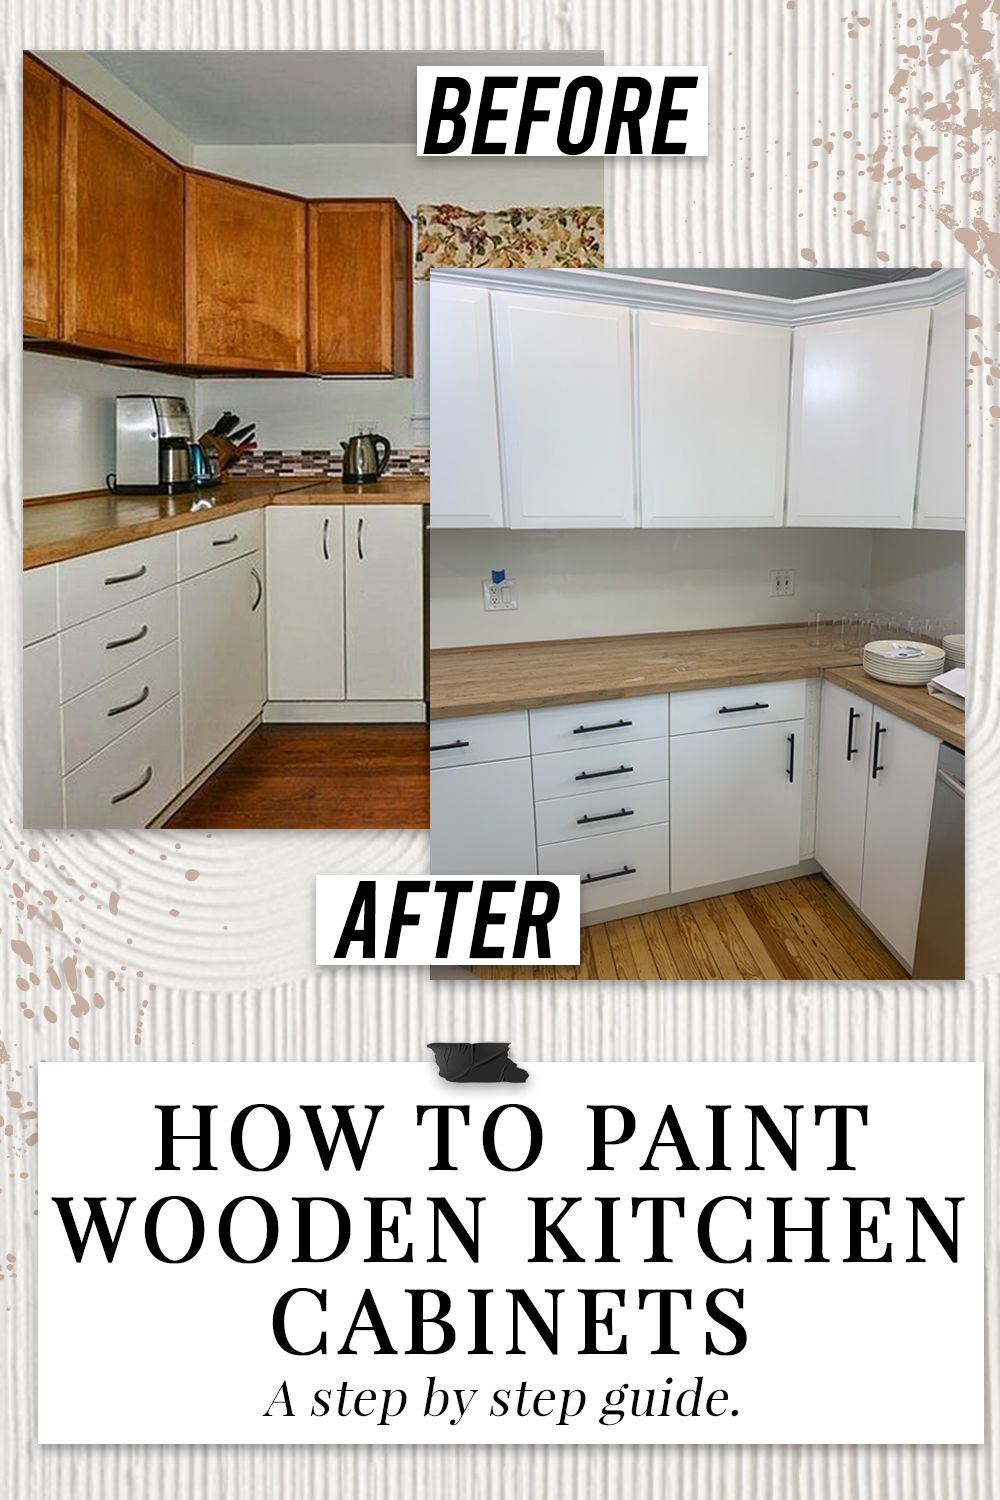 How To Paint Wooden Kitchen Cabinets Step By Step Guide Simply By Simone In 2020 Wooden Kitchen Cabinets Wooden Kitchen Kitchen Cabinets